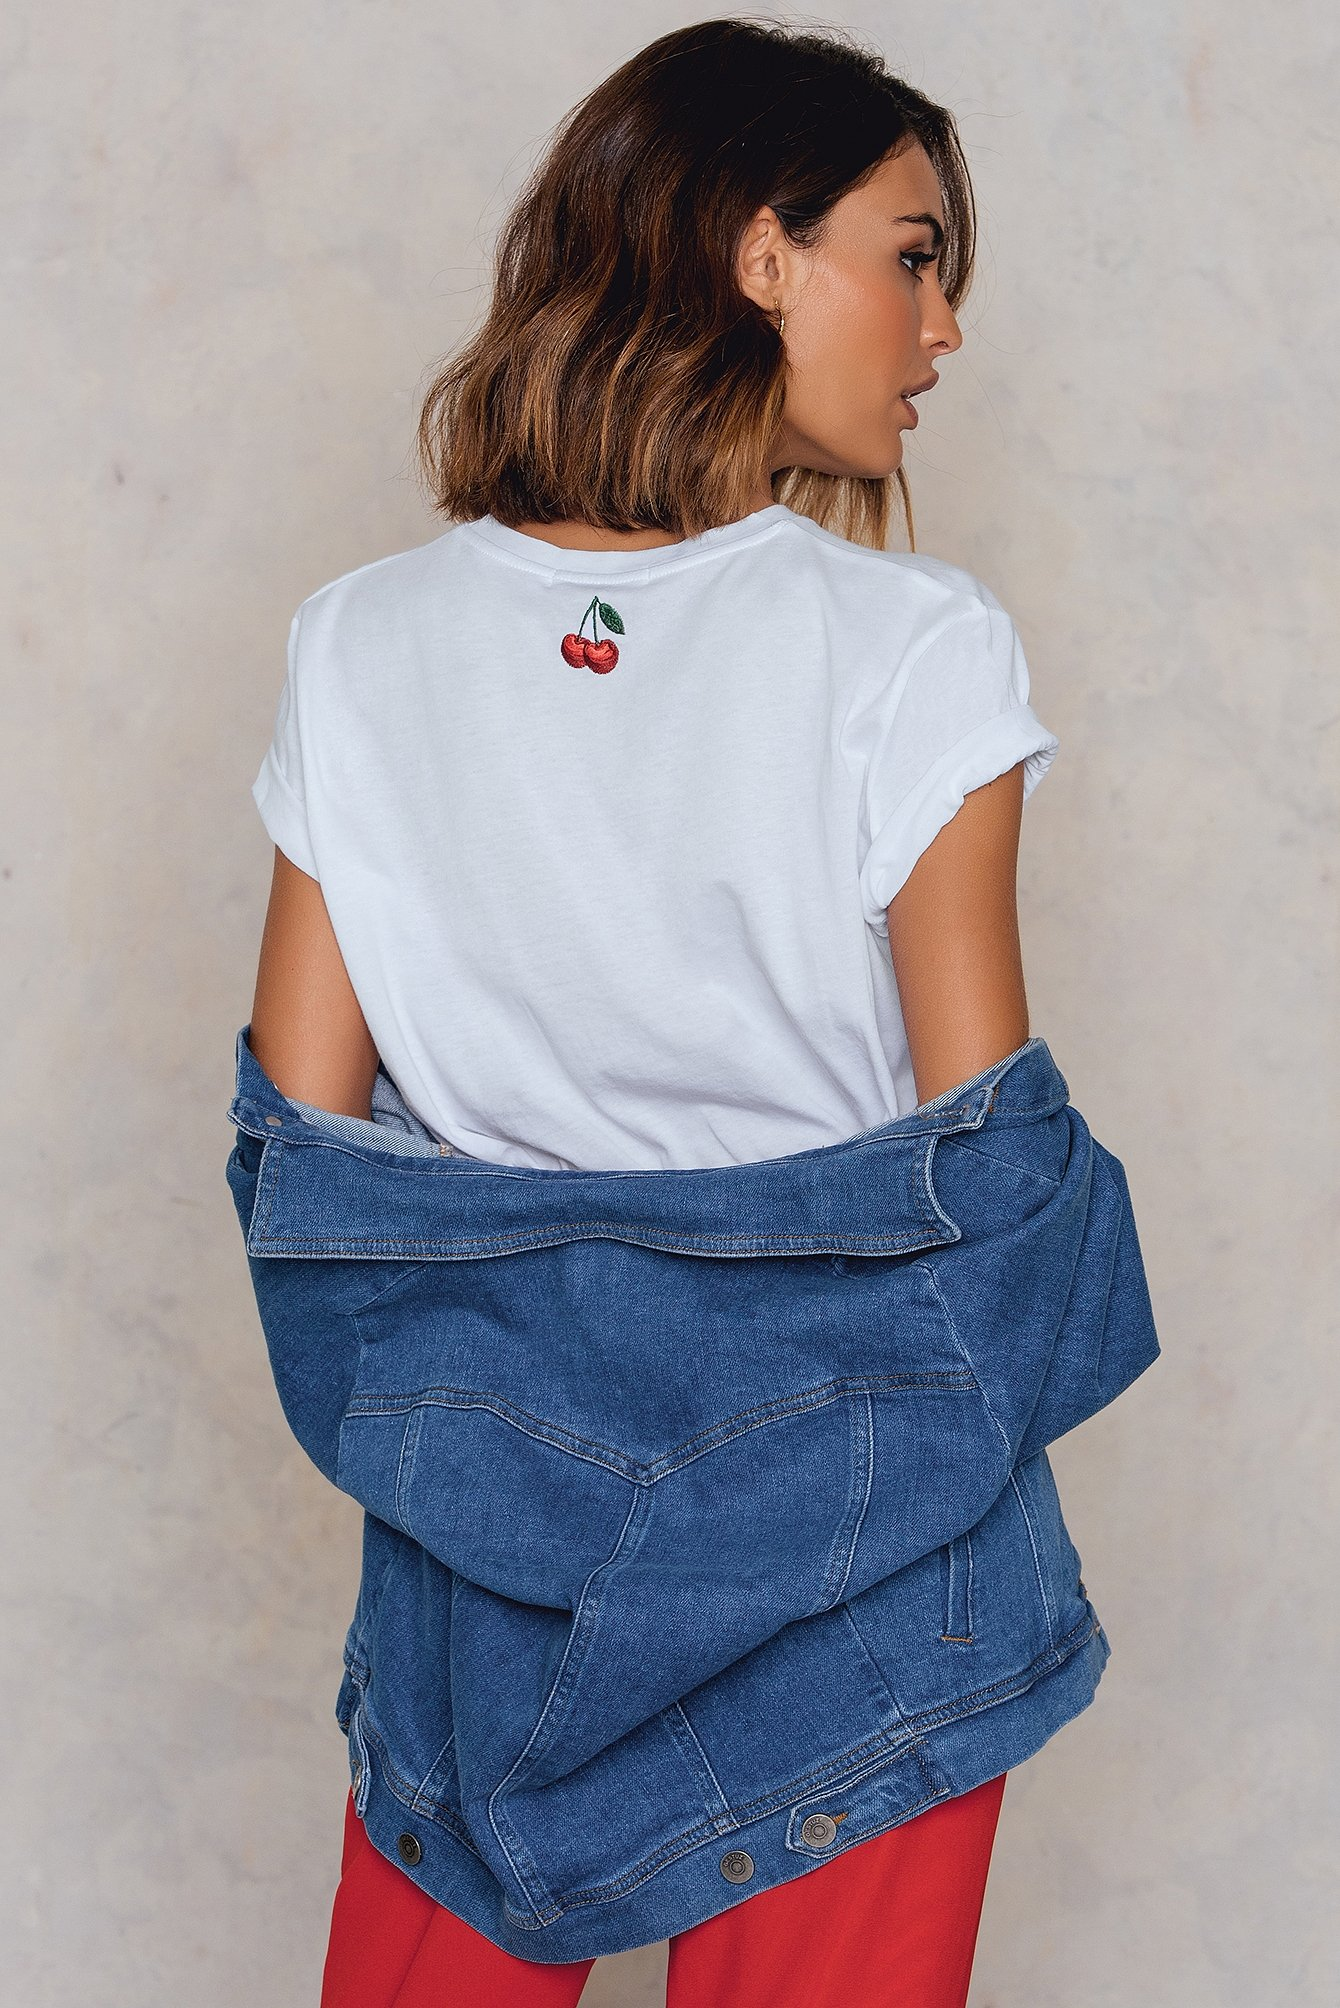 Photo of NA-KD Cherry Neck Embroidery Tee White - shop NA-KD online sales